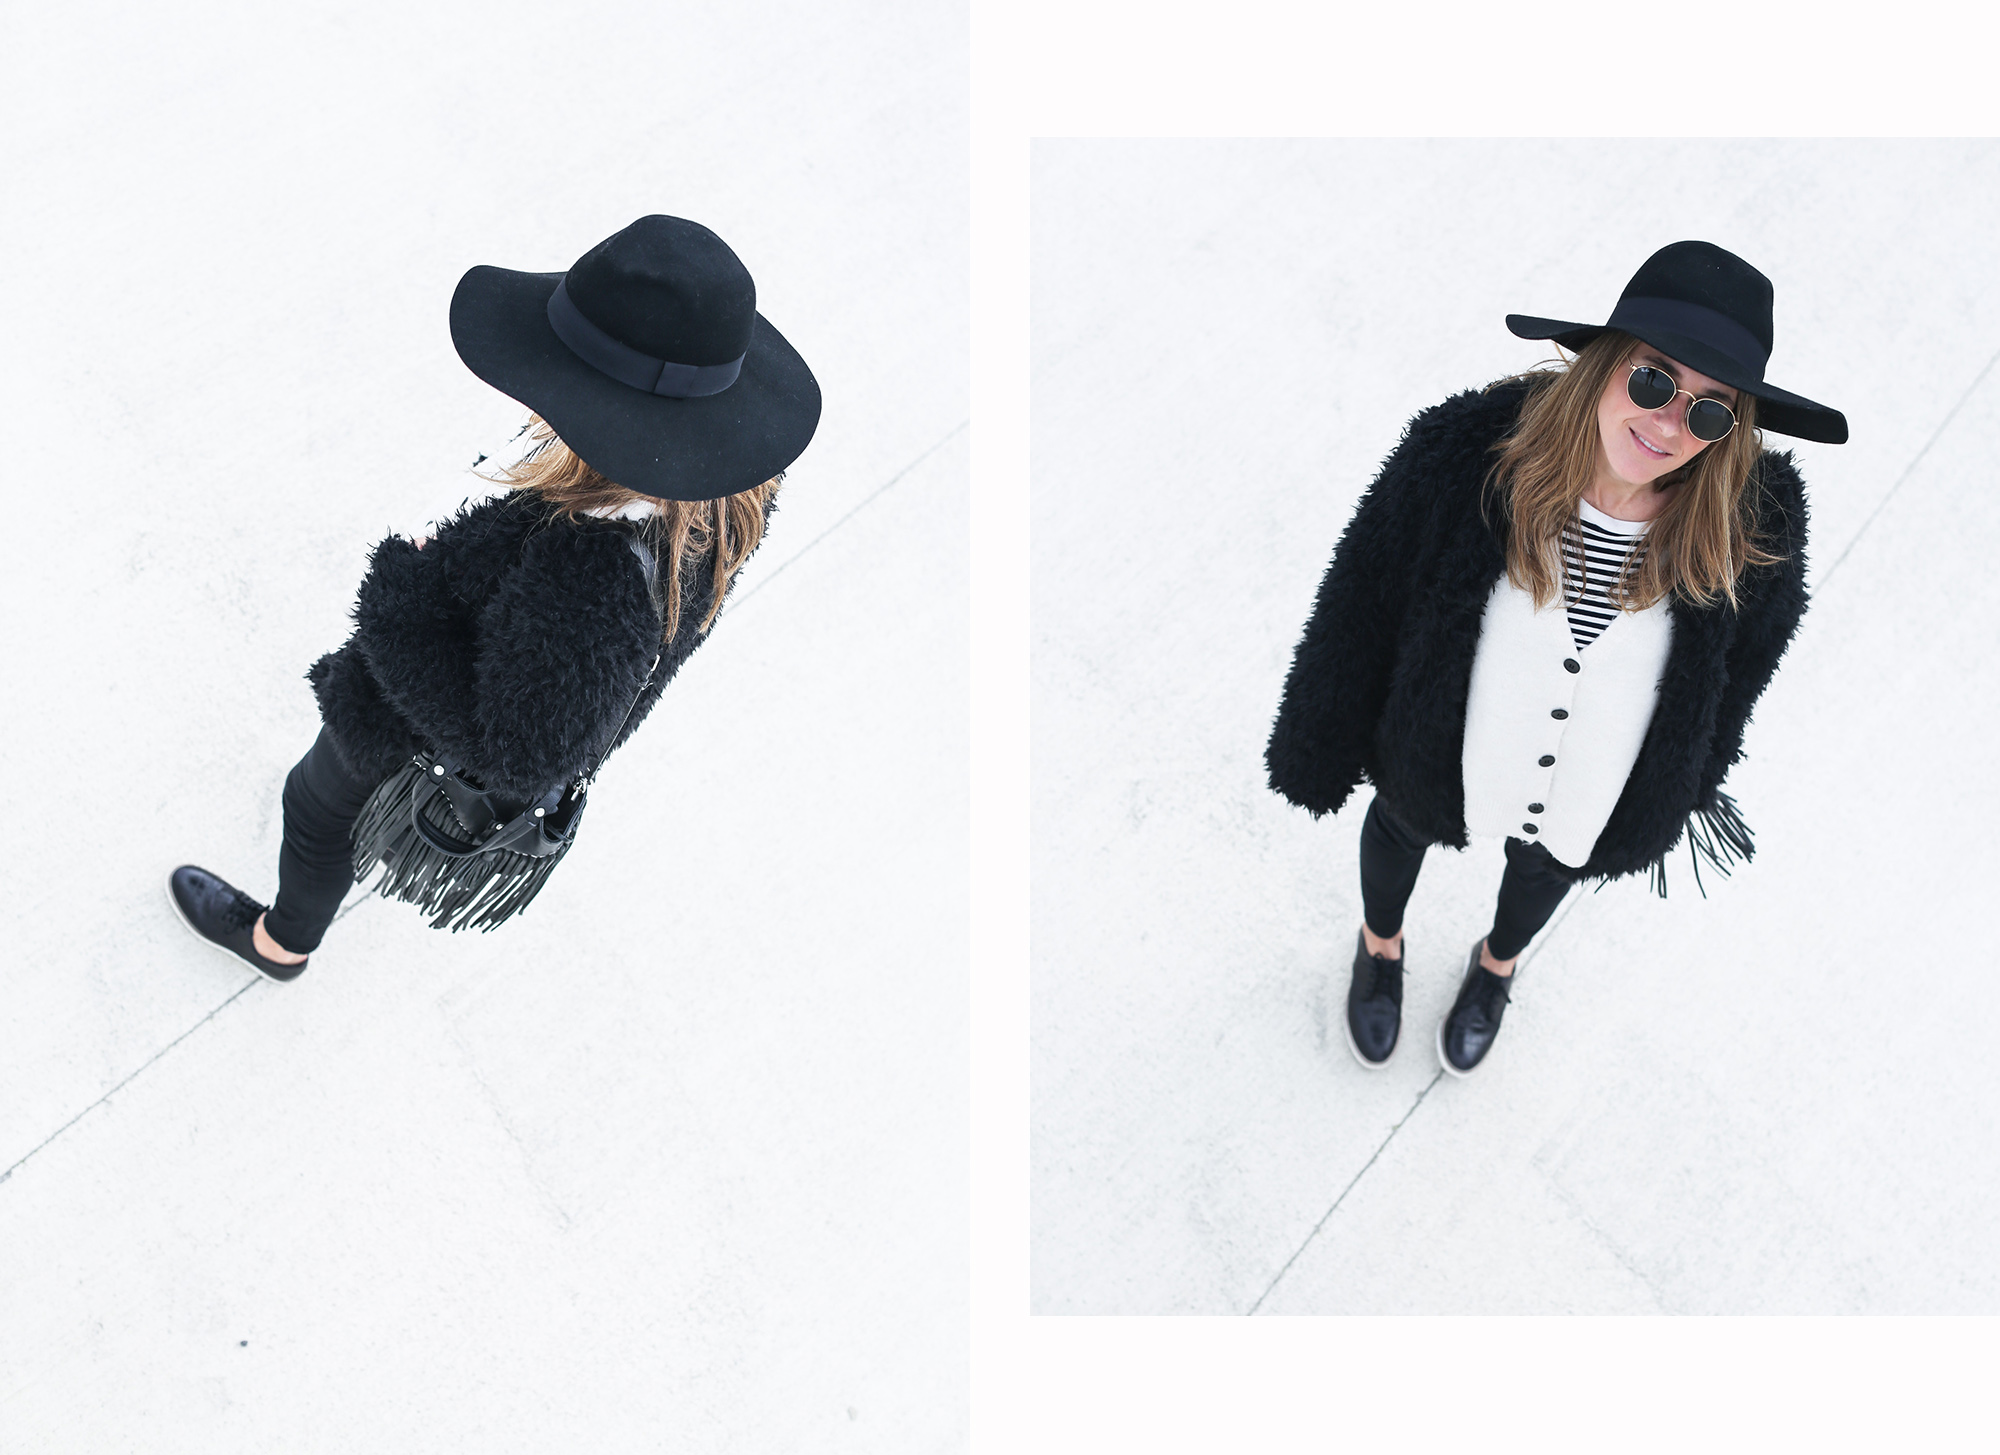 clochet_streetstyle_Billabong_Christmas_collection_furry_coat-18